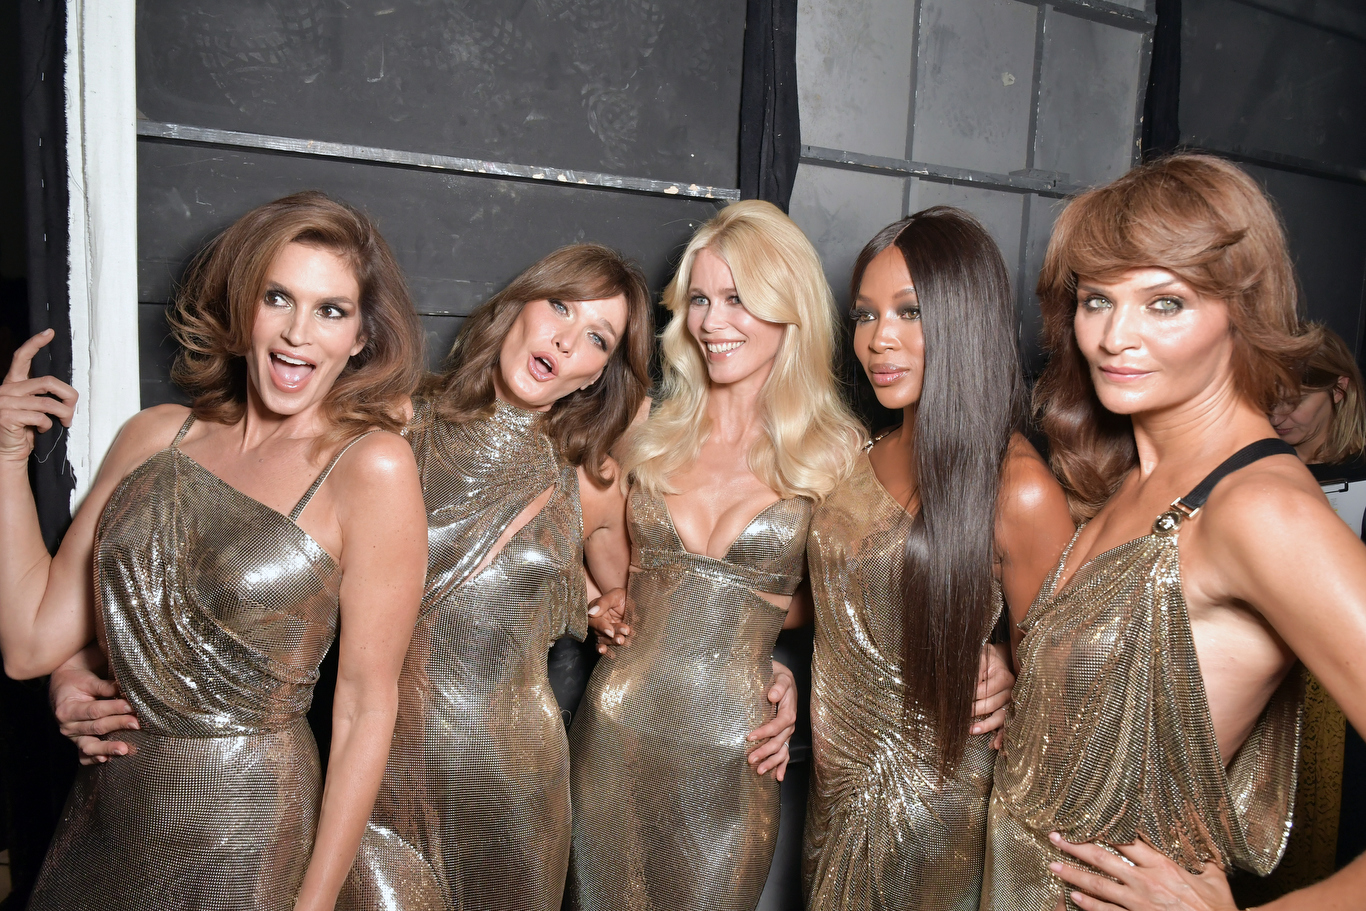 Naomi Campbell, Claudia Schiffer, Cindy Crawford, Helena Christensen and Carla Bruni closed the Versace show as a tribute to Gianni